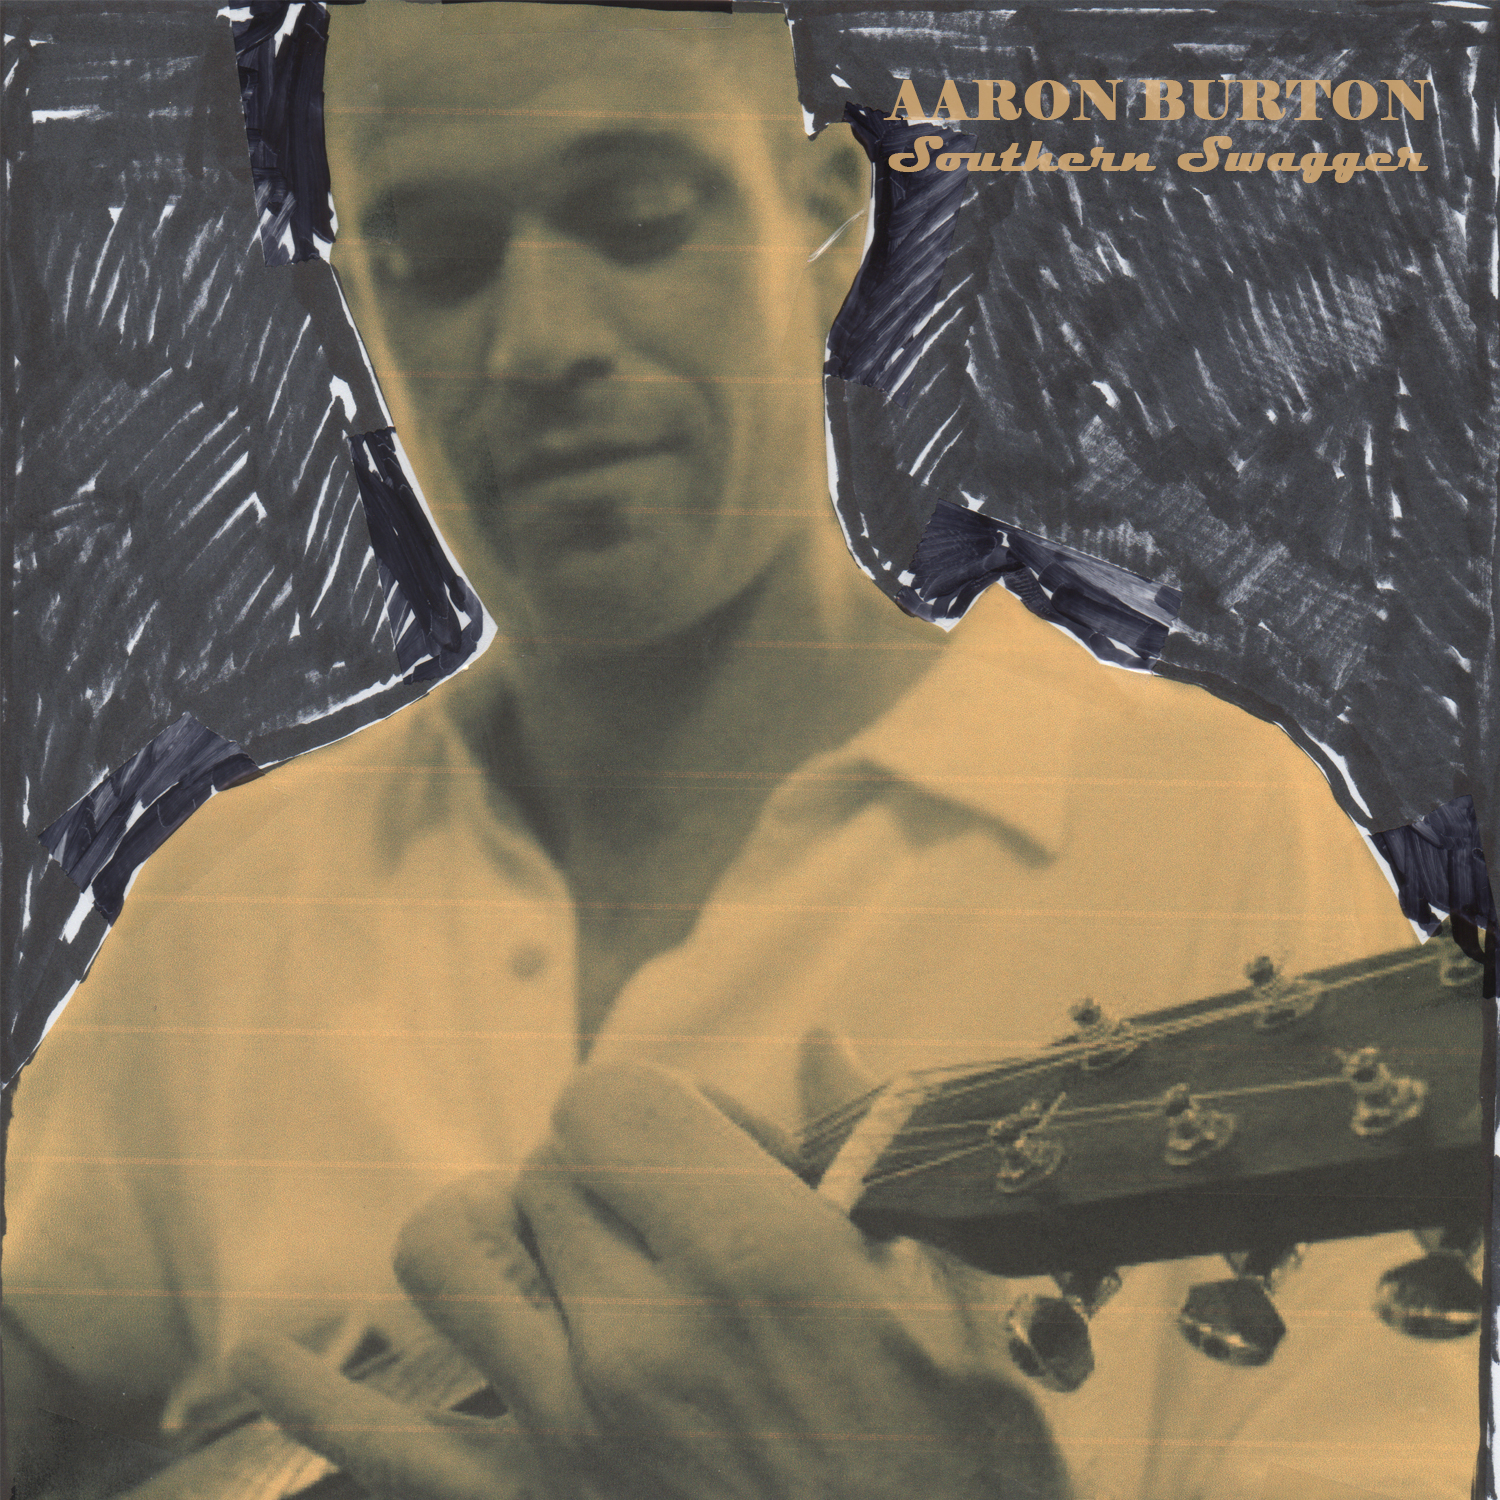 Aaron Burton new album Southern Swagger album cover